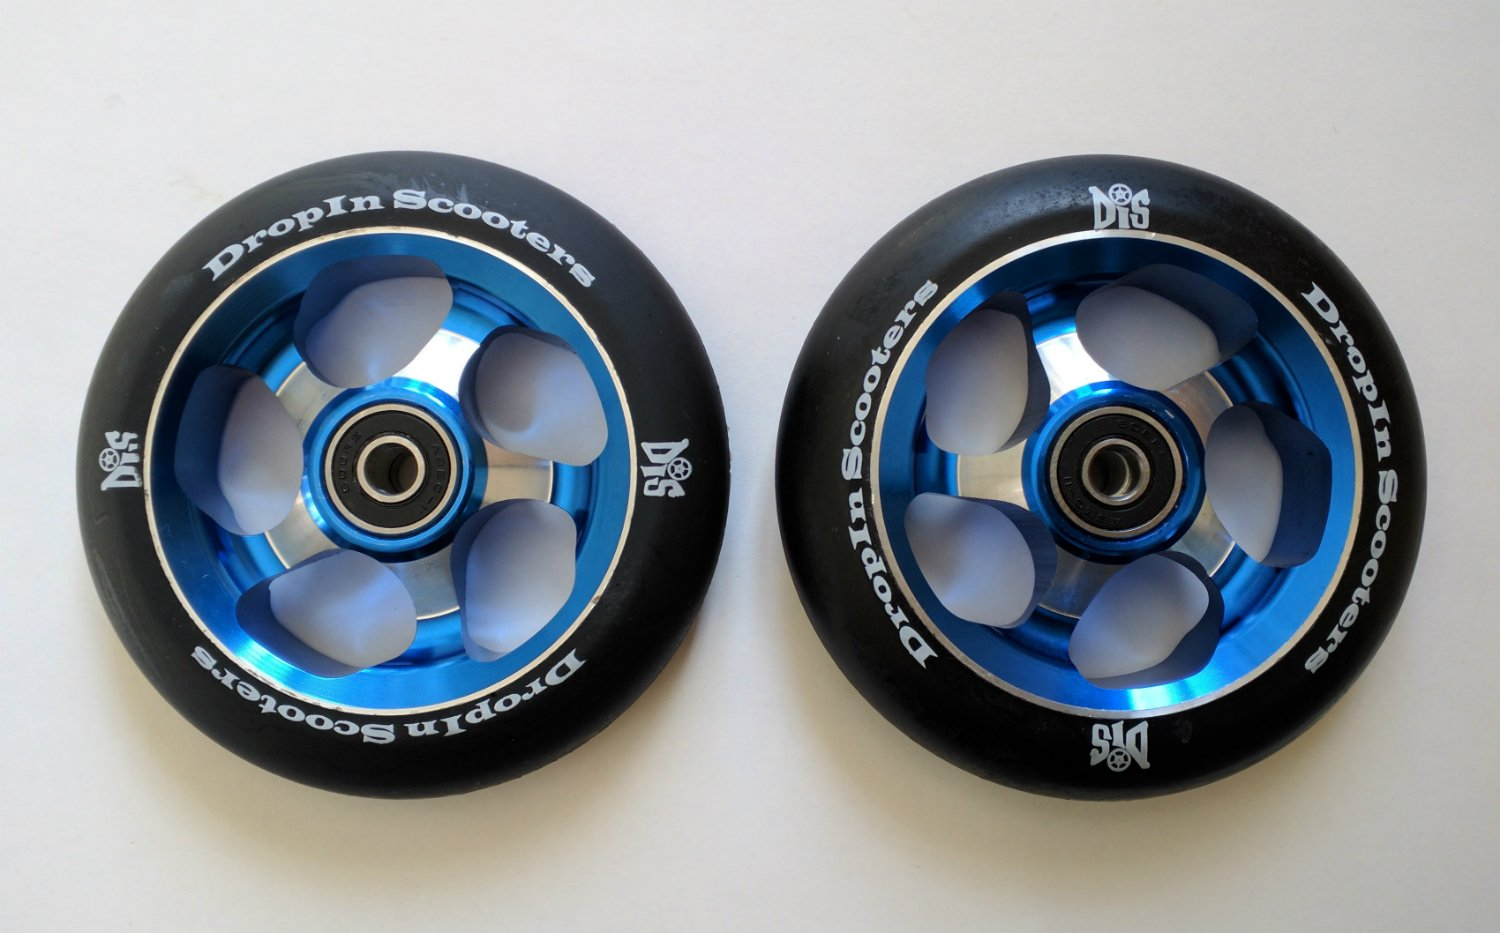 DIS 110mm Metal core Park Wheels 5-Spoke - Blue